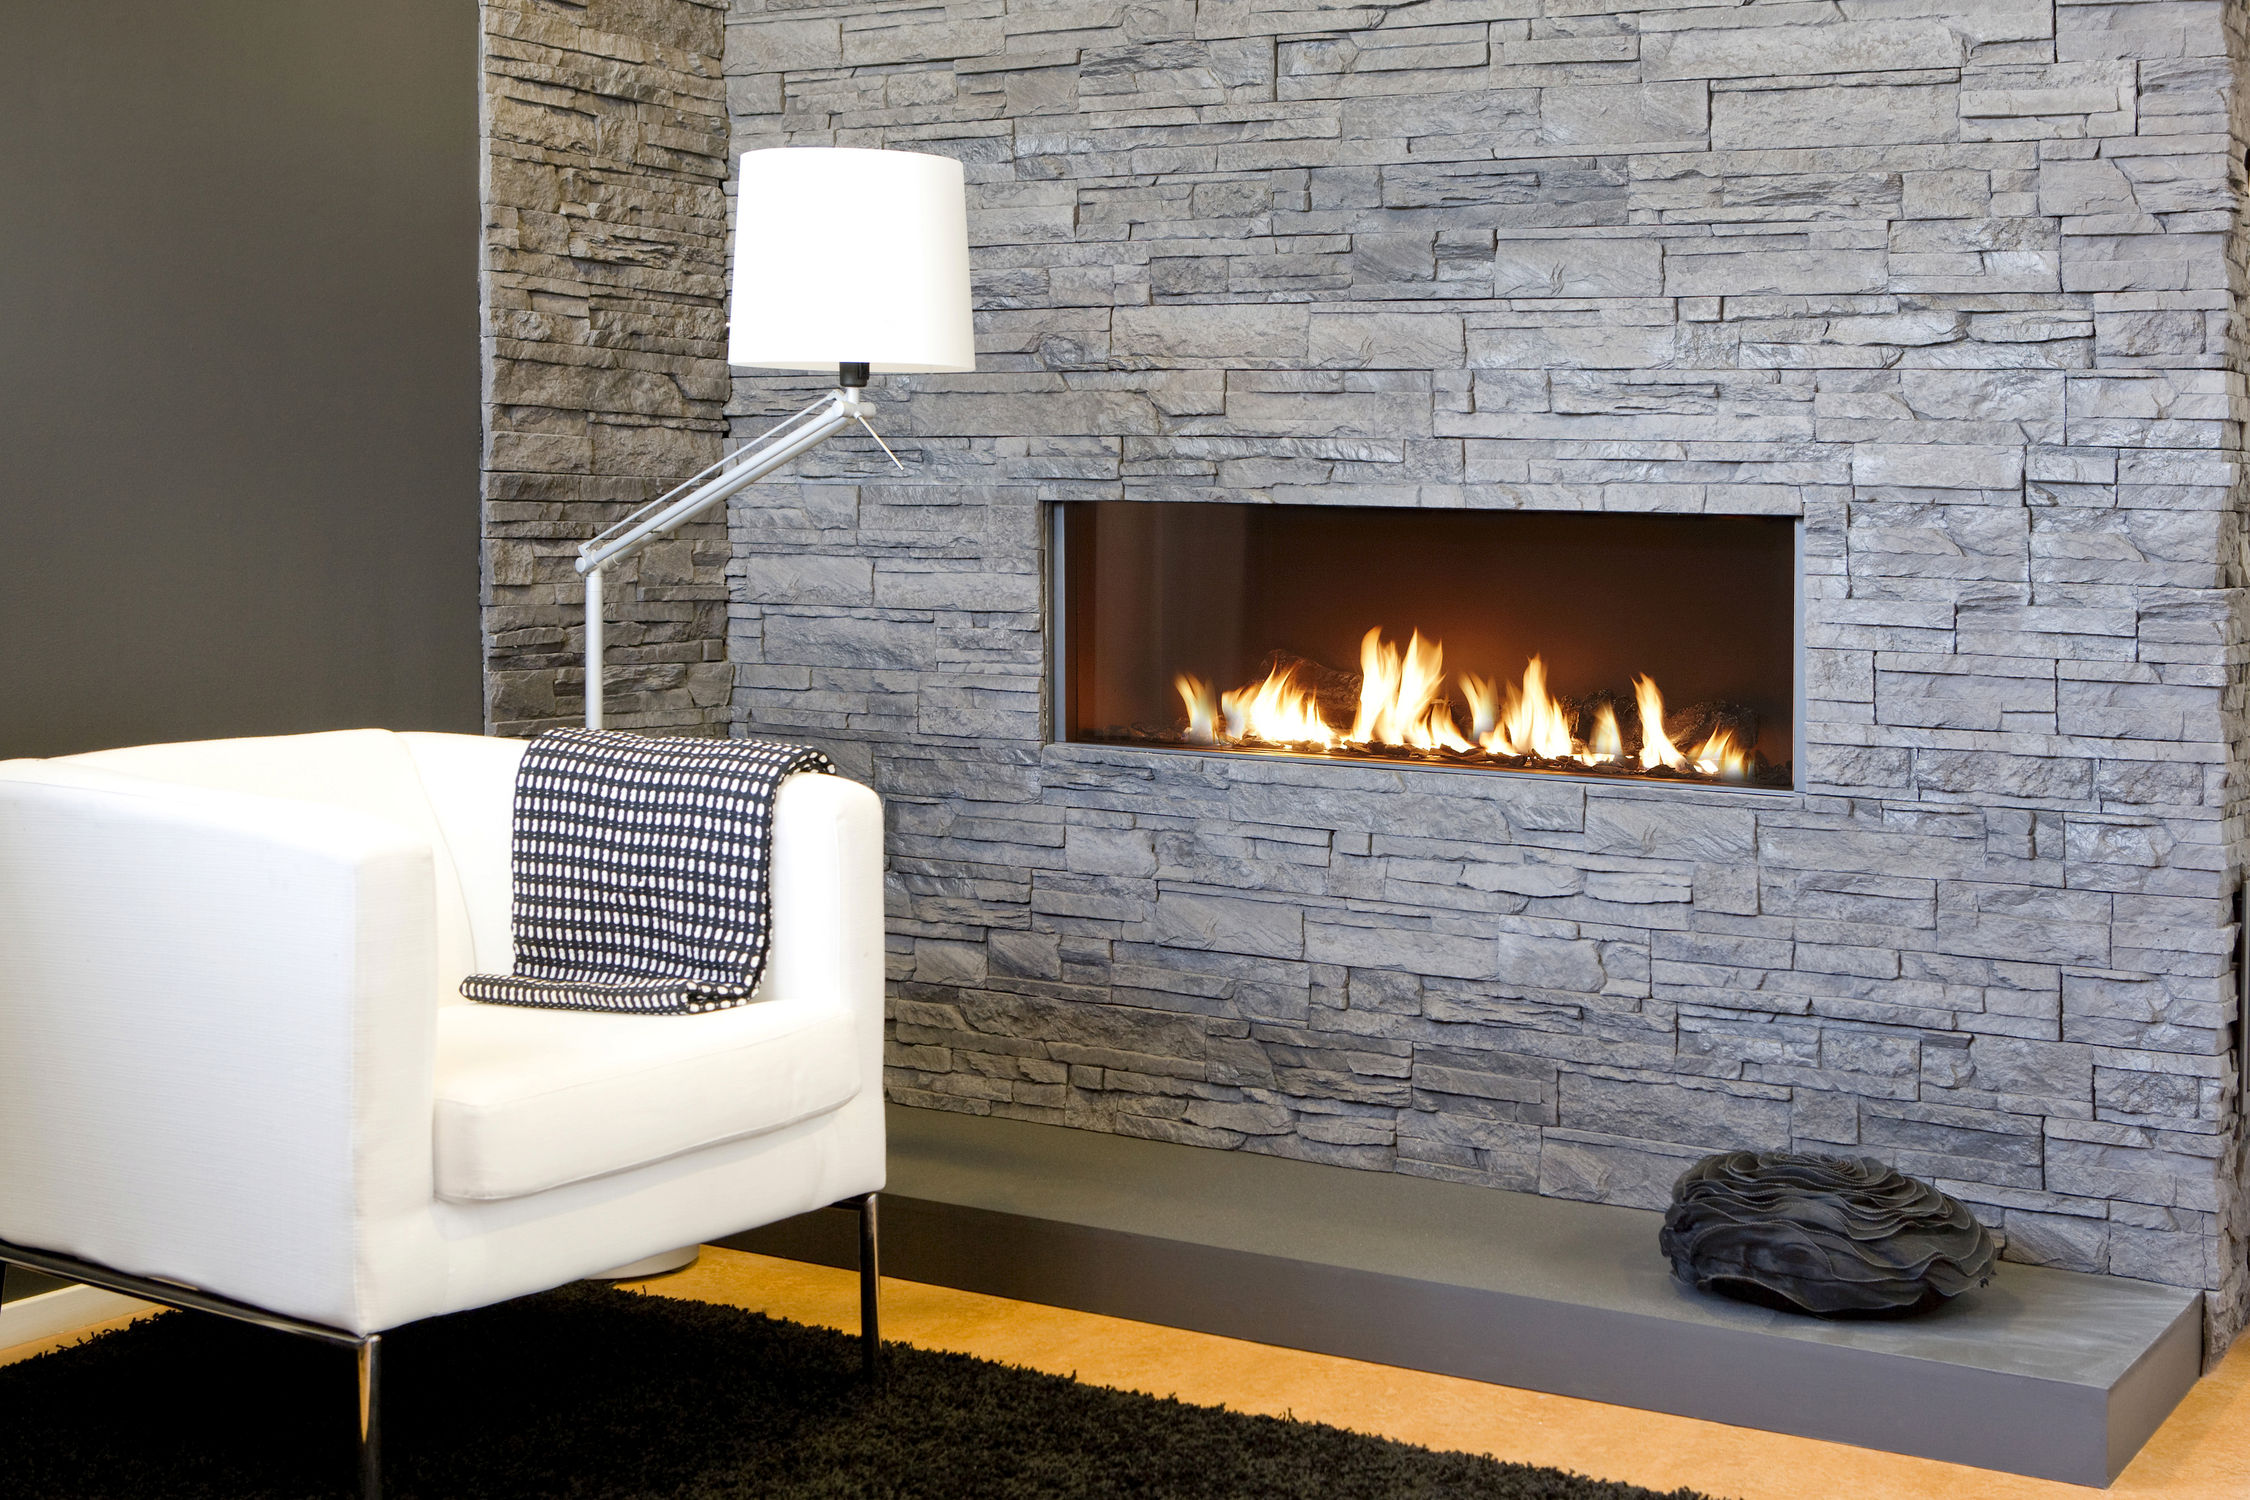 Gas Fireplace Design Ideas decoration wonderful neutral fireplace design ideas with charming black gas fireplace logs design also classic Built In Electric Fireplace For Your Home Fireplace Design Ideas